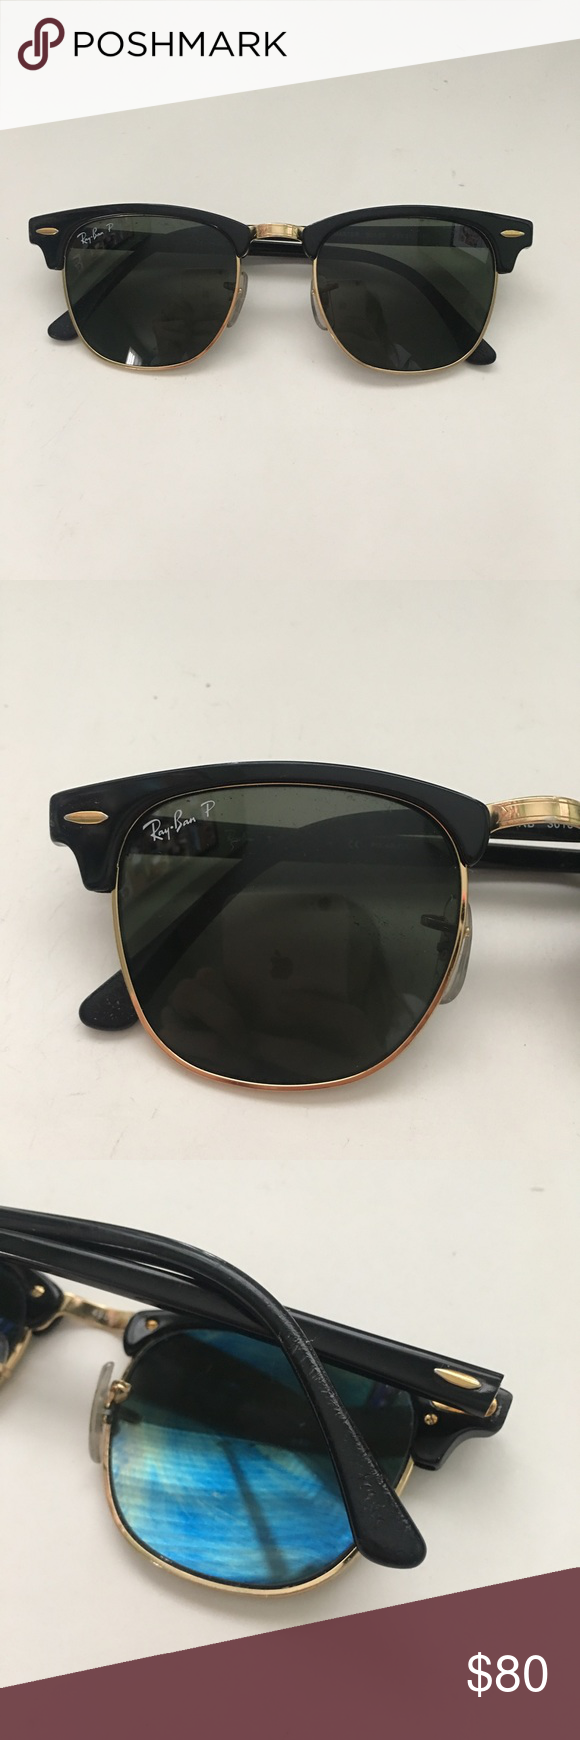 dd19c68b2e5 Listing not available. Ray Ban Polarized Clubmaster - Black Model code  RB3016  901 58 49-21 ...